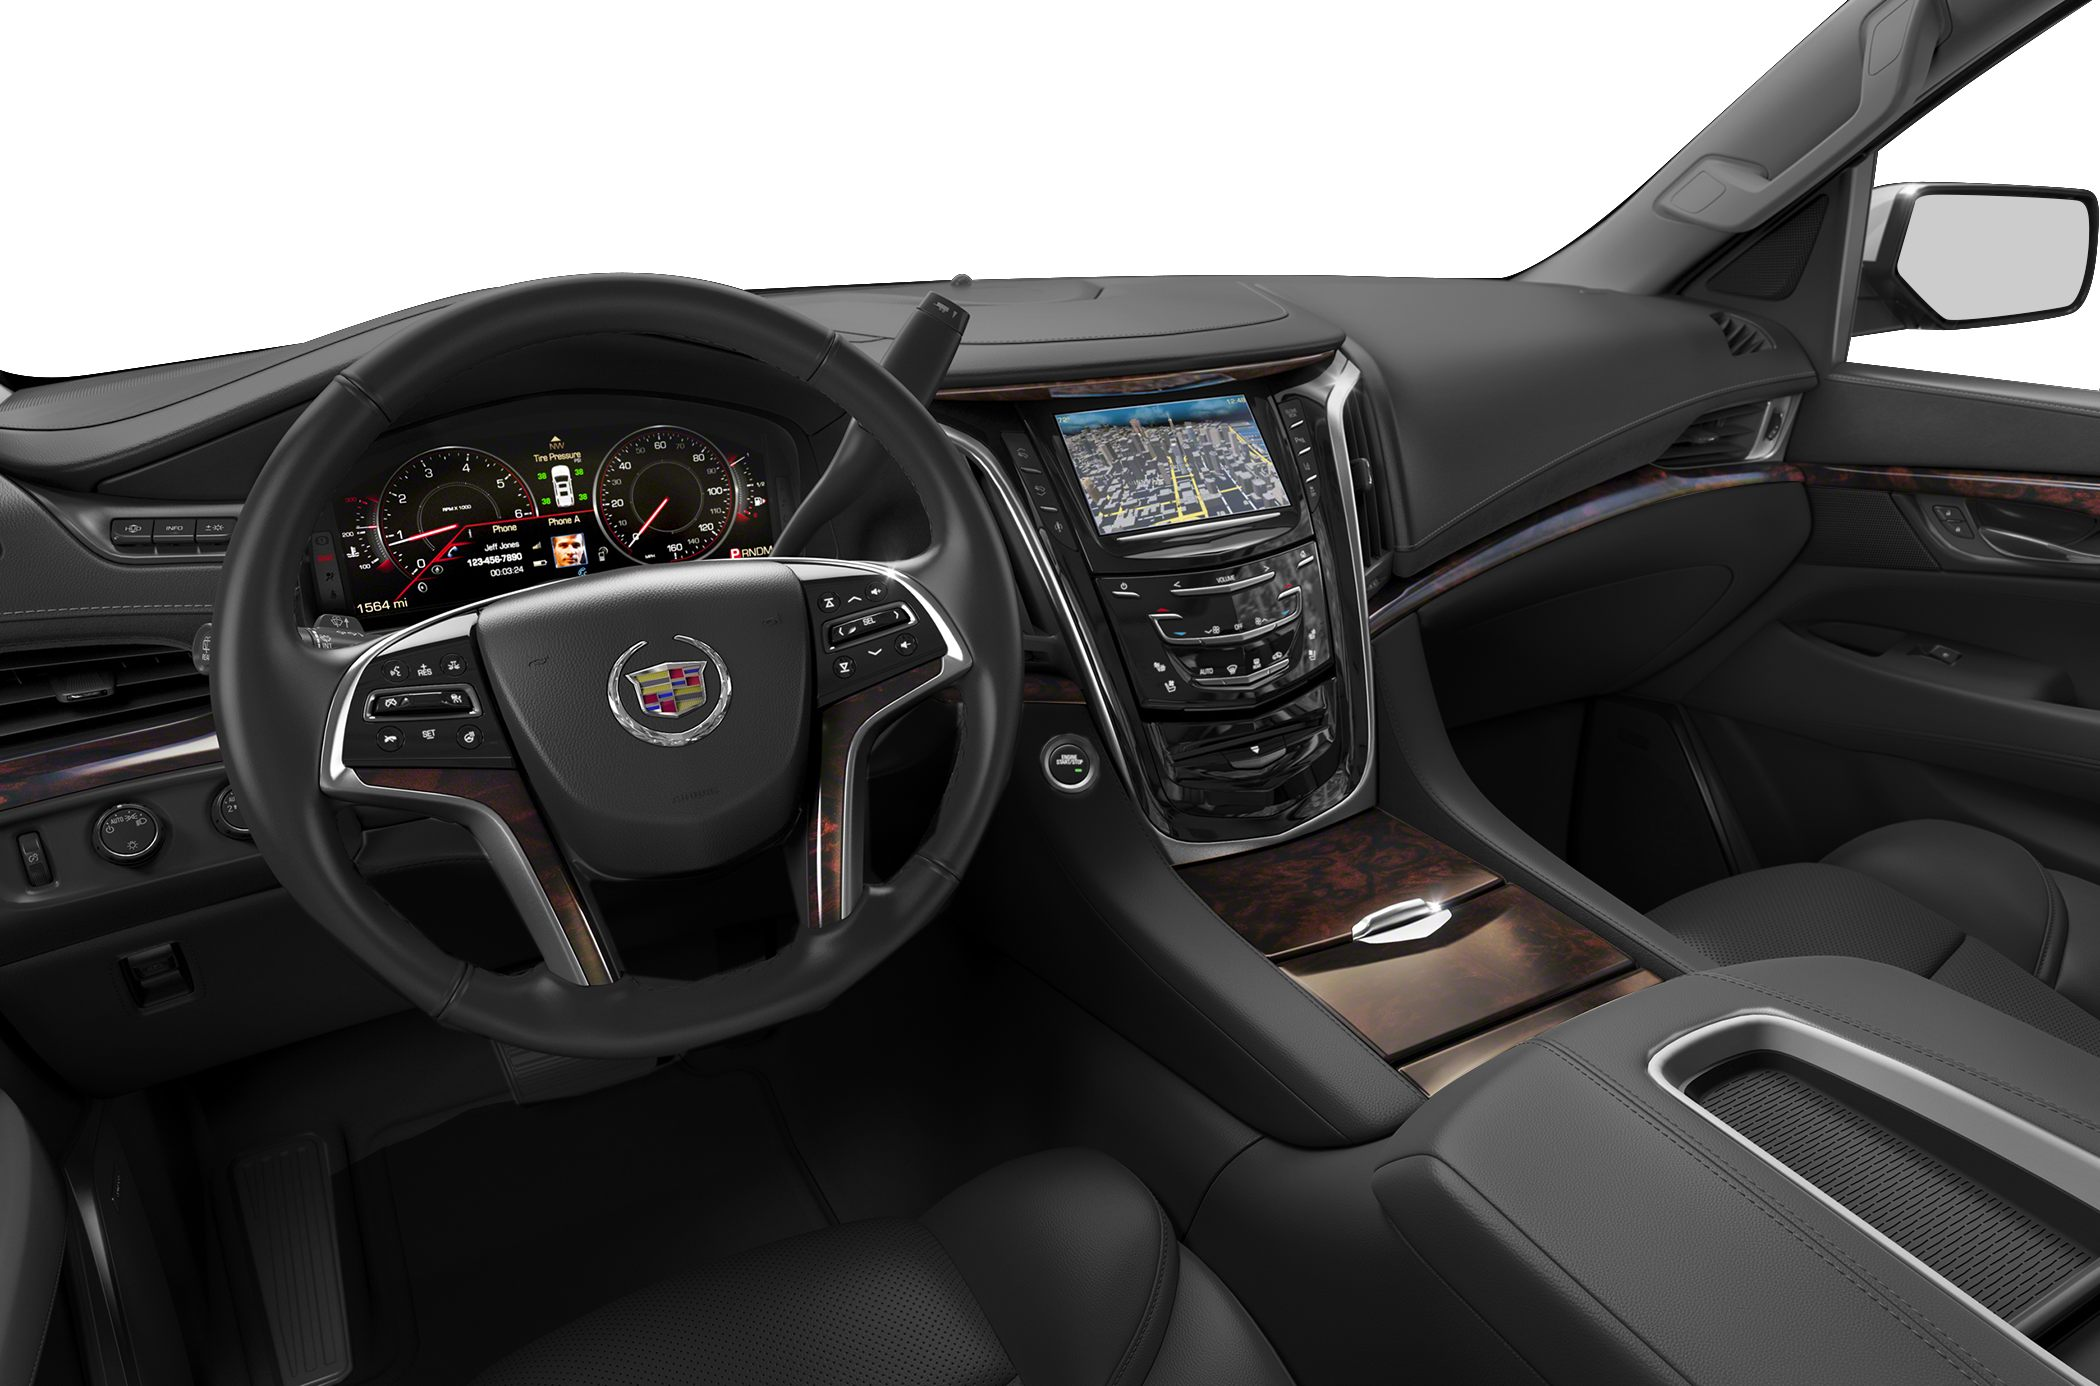 2015 Cadillac Escalade Black Interior Images Galleries With A Bite